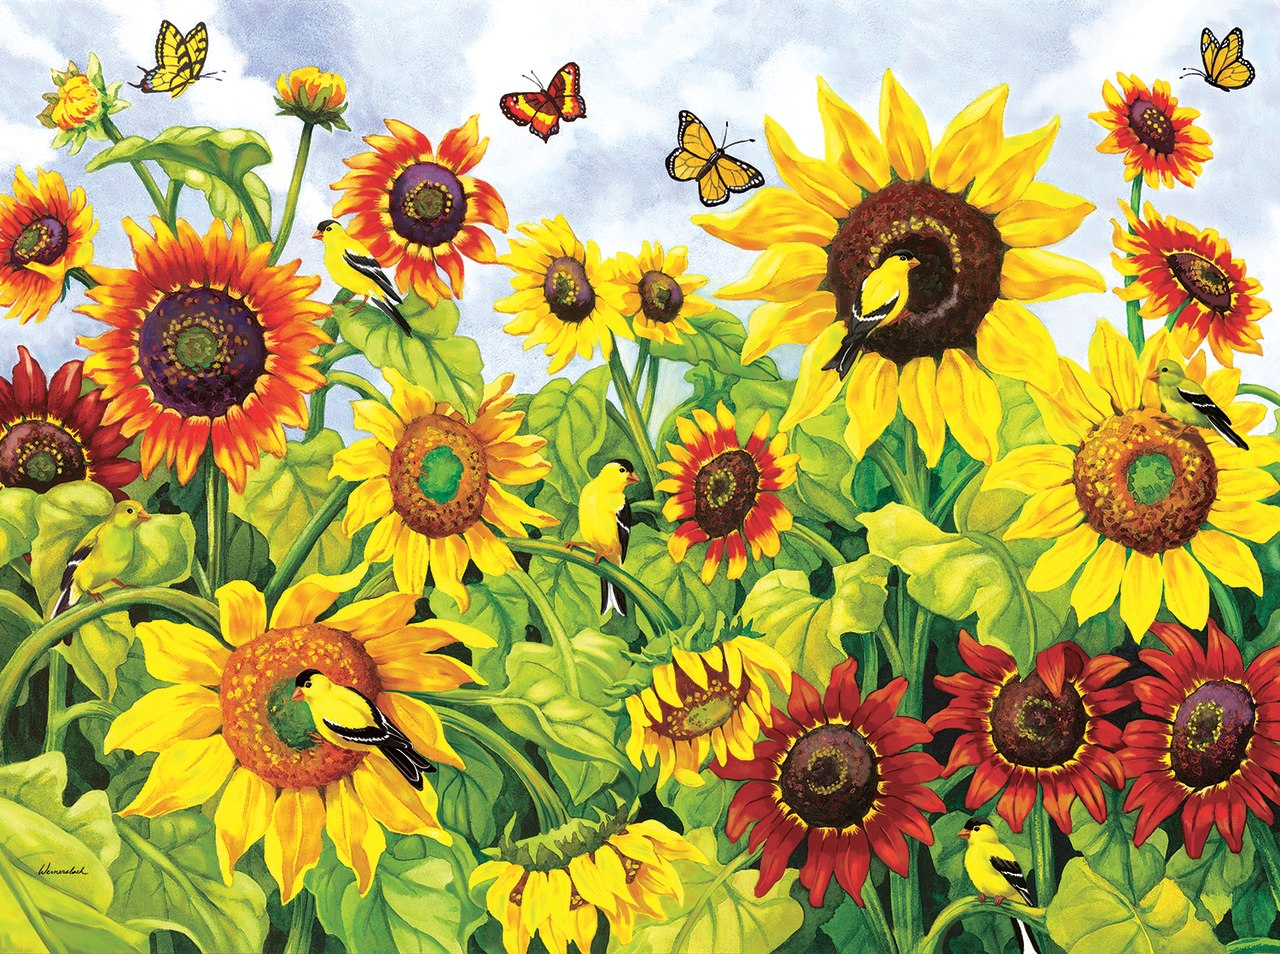 Sunflowers & Goldfinches - 1000pc Jigsaw Puzzle By Sunsout  			  					NEW